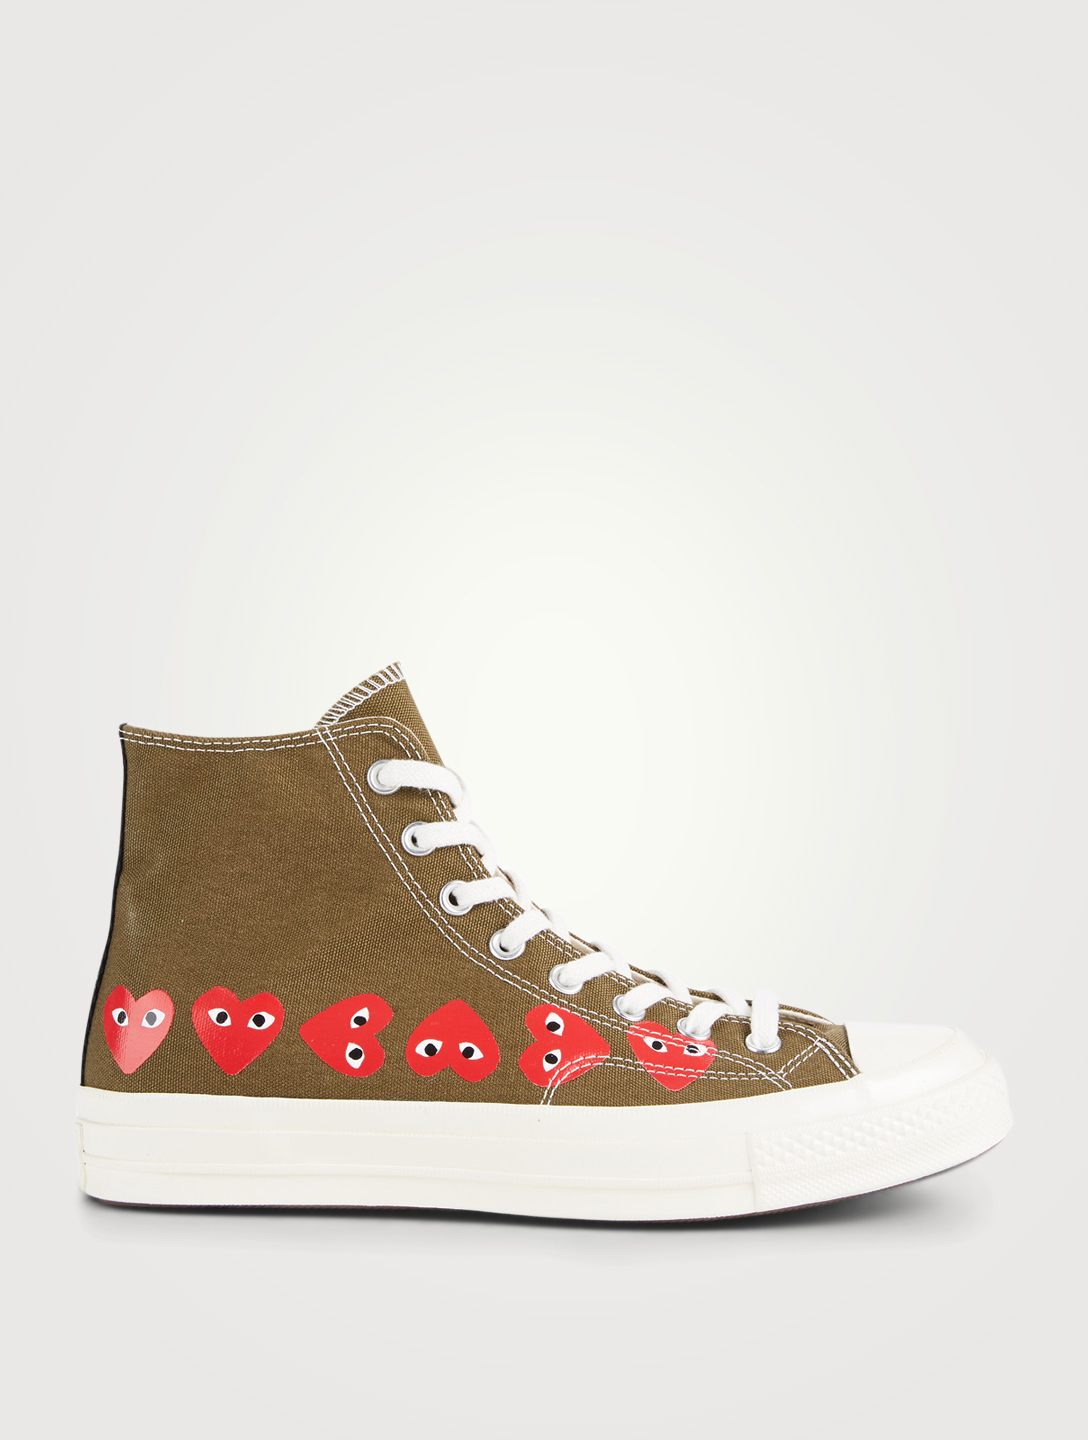 32260c2b8224a1 COMME DES GARÇONS PLAY. Converse x CDG PLAY Chuck High-Top Sneakers.  180. Item  No 4311368304